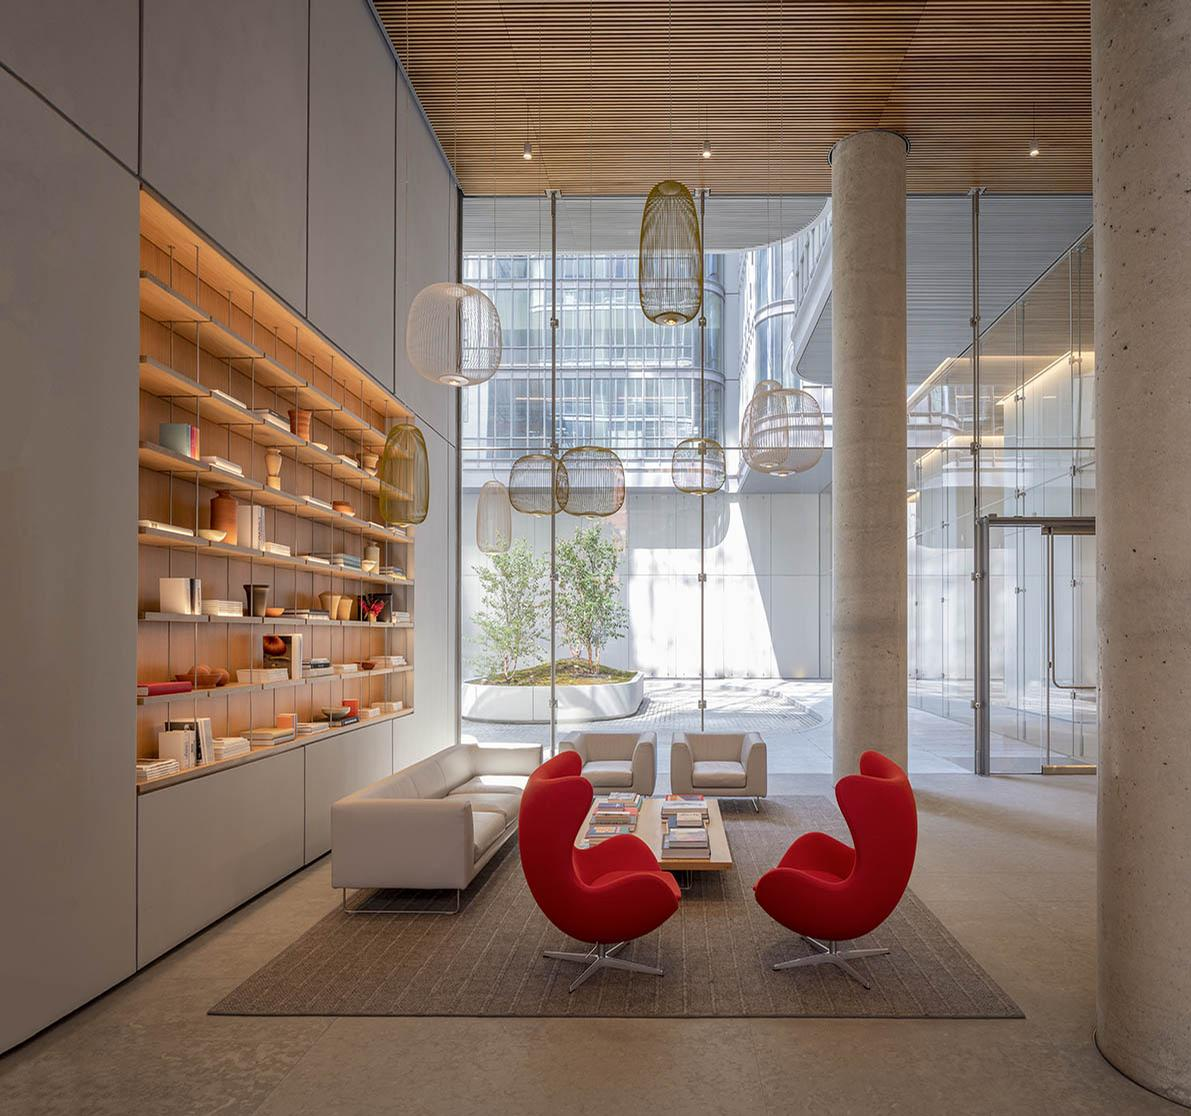 565 Broome SoHo is designed by Renzo Piano Building Workshop / Anna Morgowicz